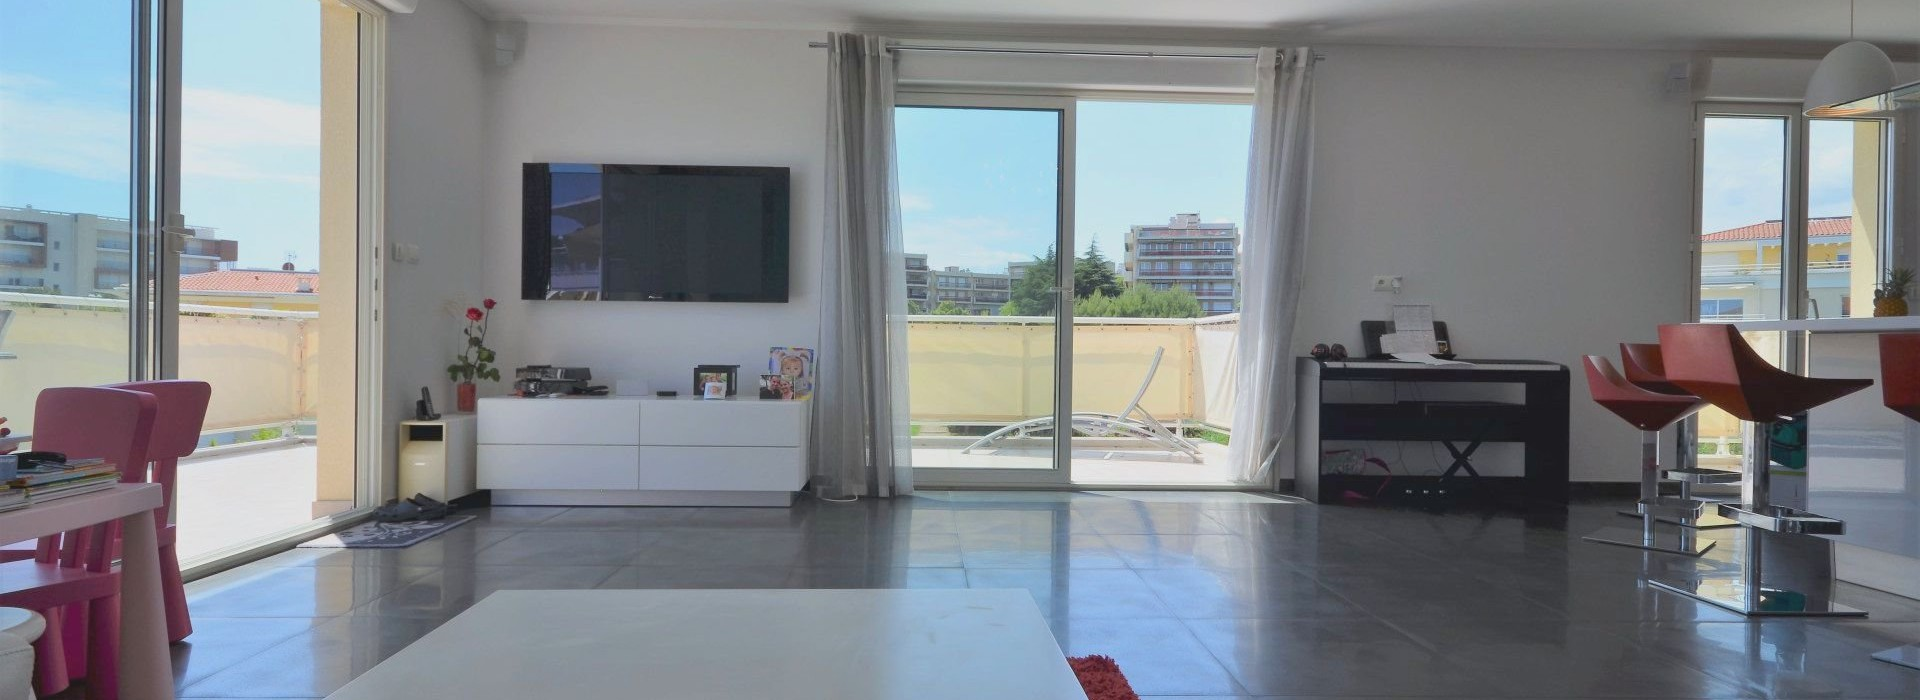 Appartement Antibes 4 Pièces 104m2 735,000€